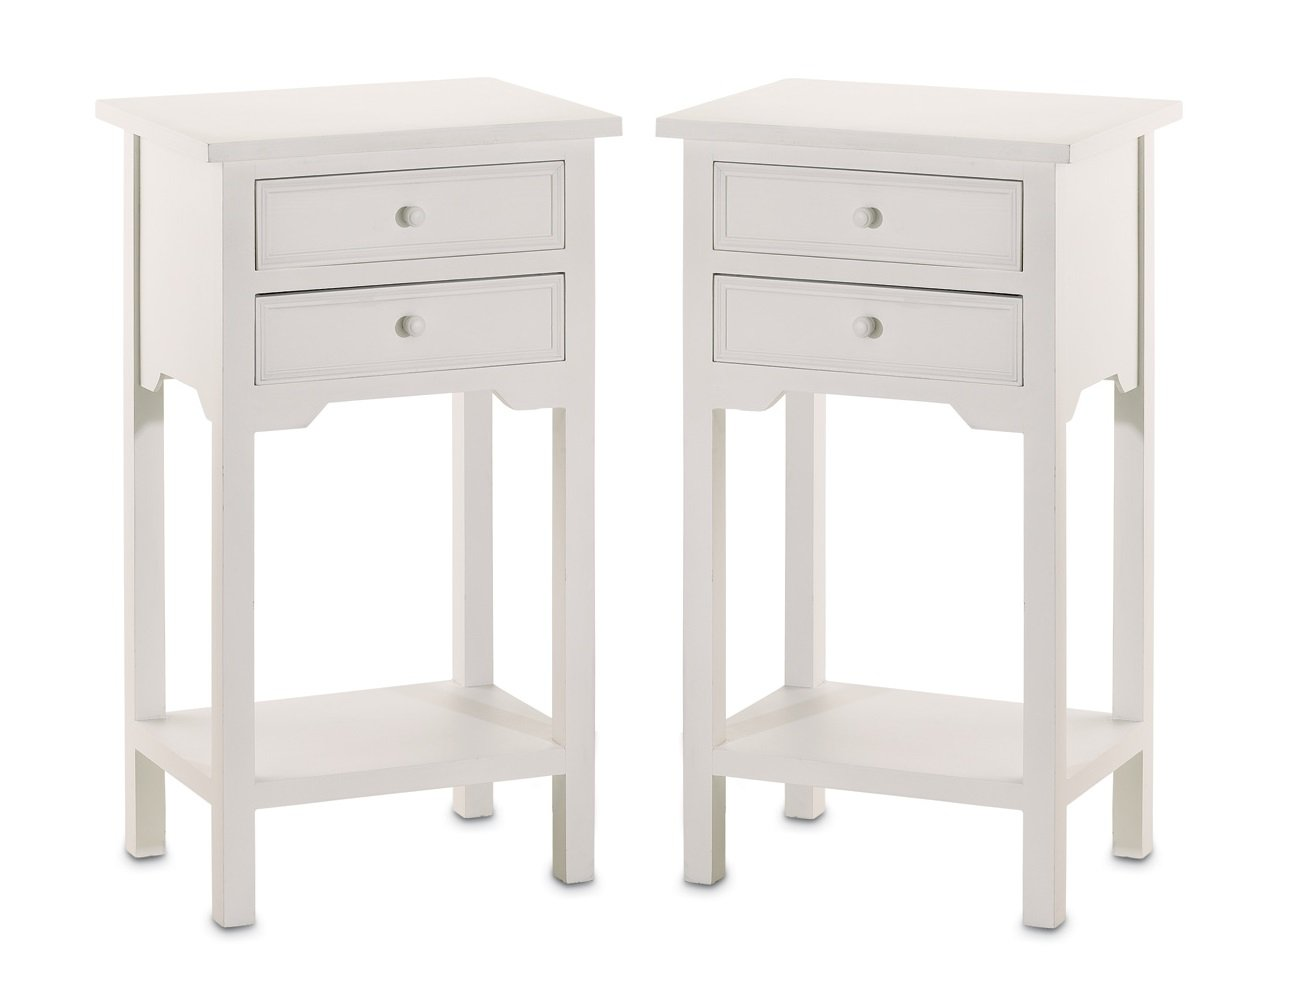 Amazon.com: Set of 2 Wood White End Tables Nightstands with Two Drawers:  Kitchen & Dining